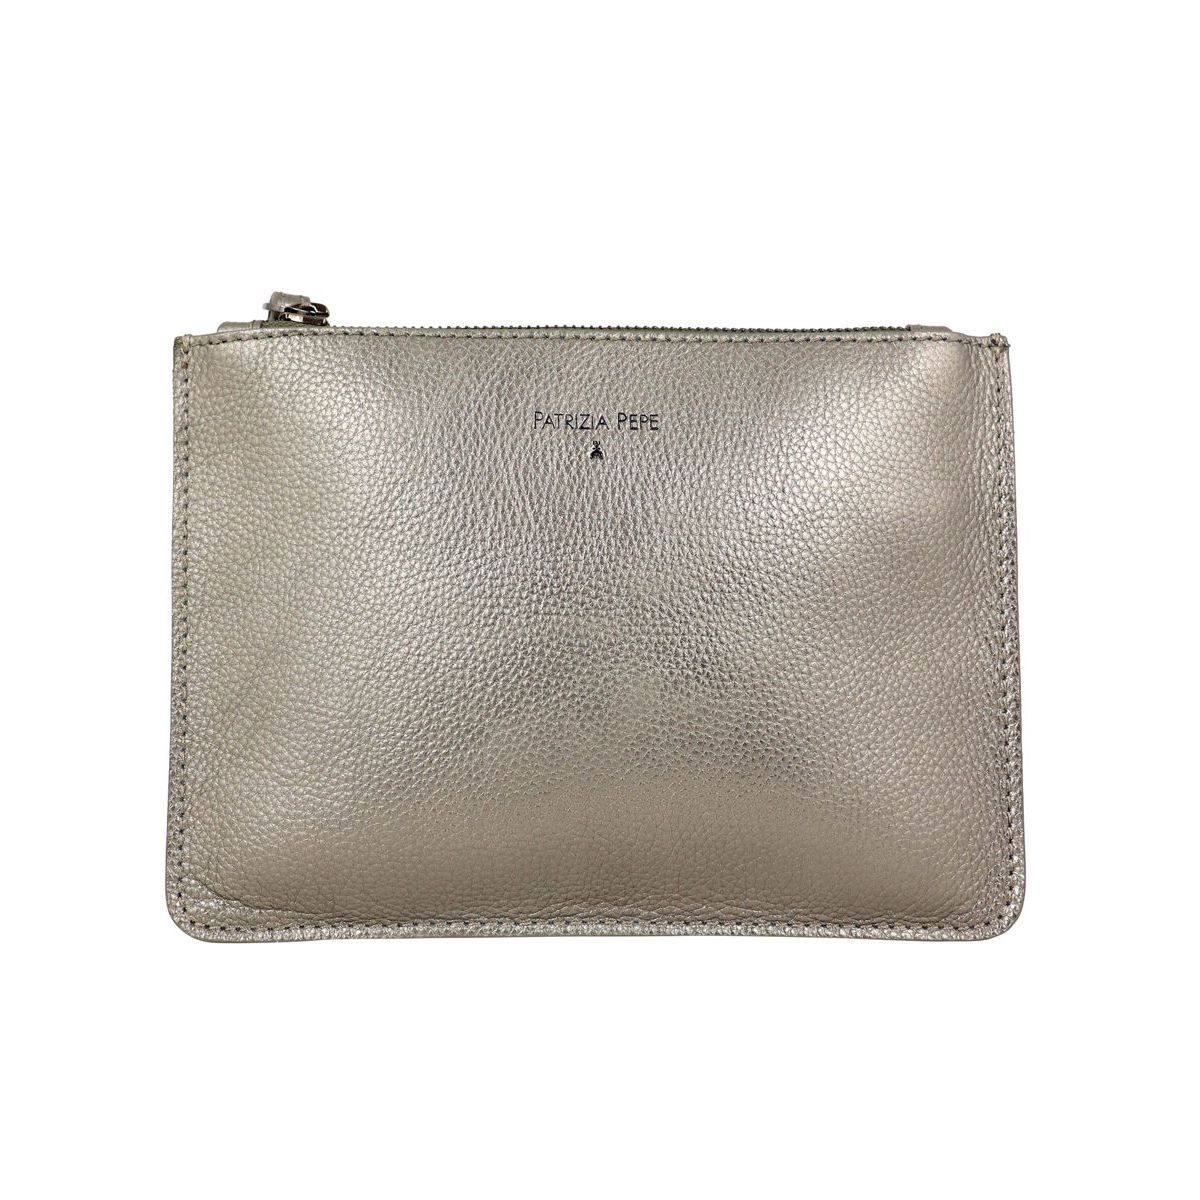 Flat clutch bag in hammered leather with strap Bronze Patrizia Pepe